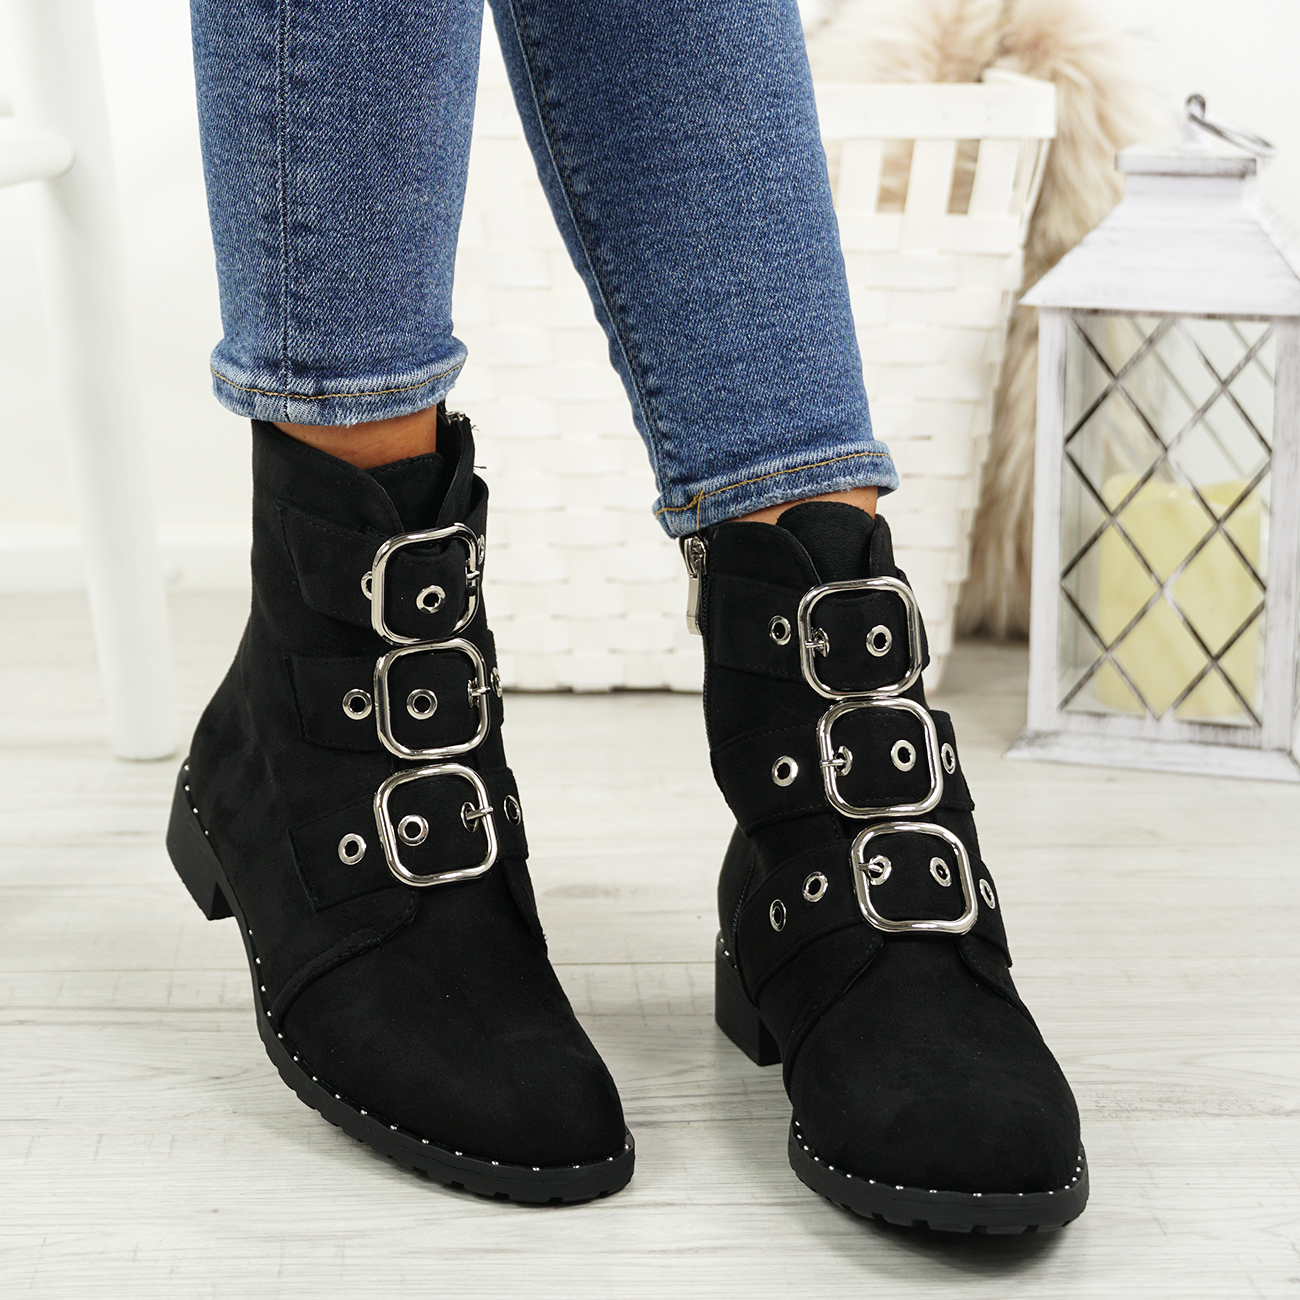 LADIES-WOMENS-BIKER-ANKLE-BOOTS-ZIP-STUDDED-LOW-HEEL-COMFY-SHOES-SIZES thumbnail 12